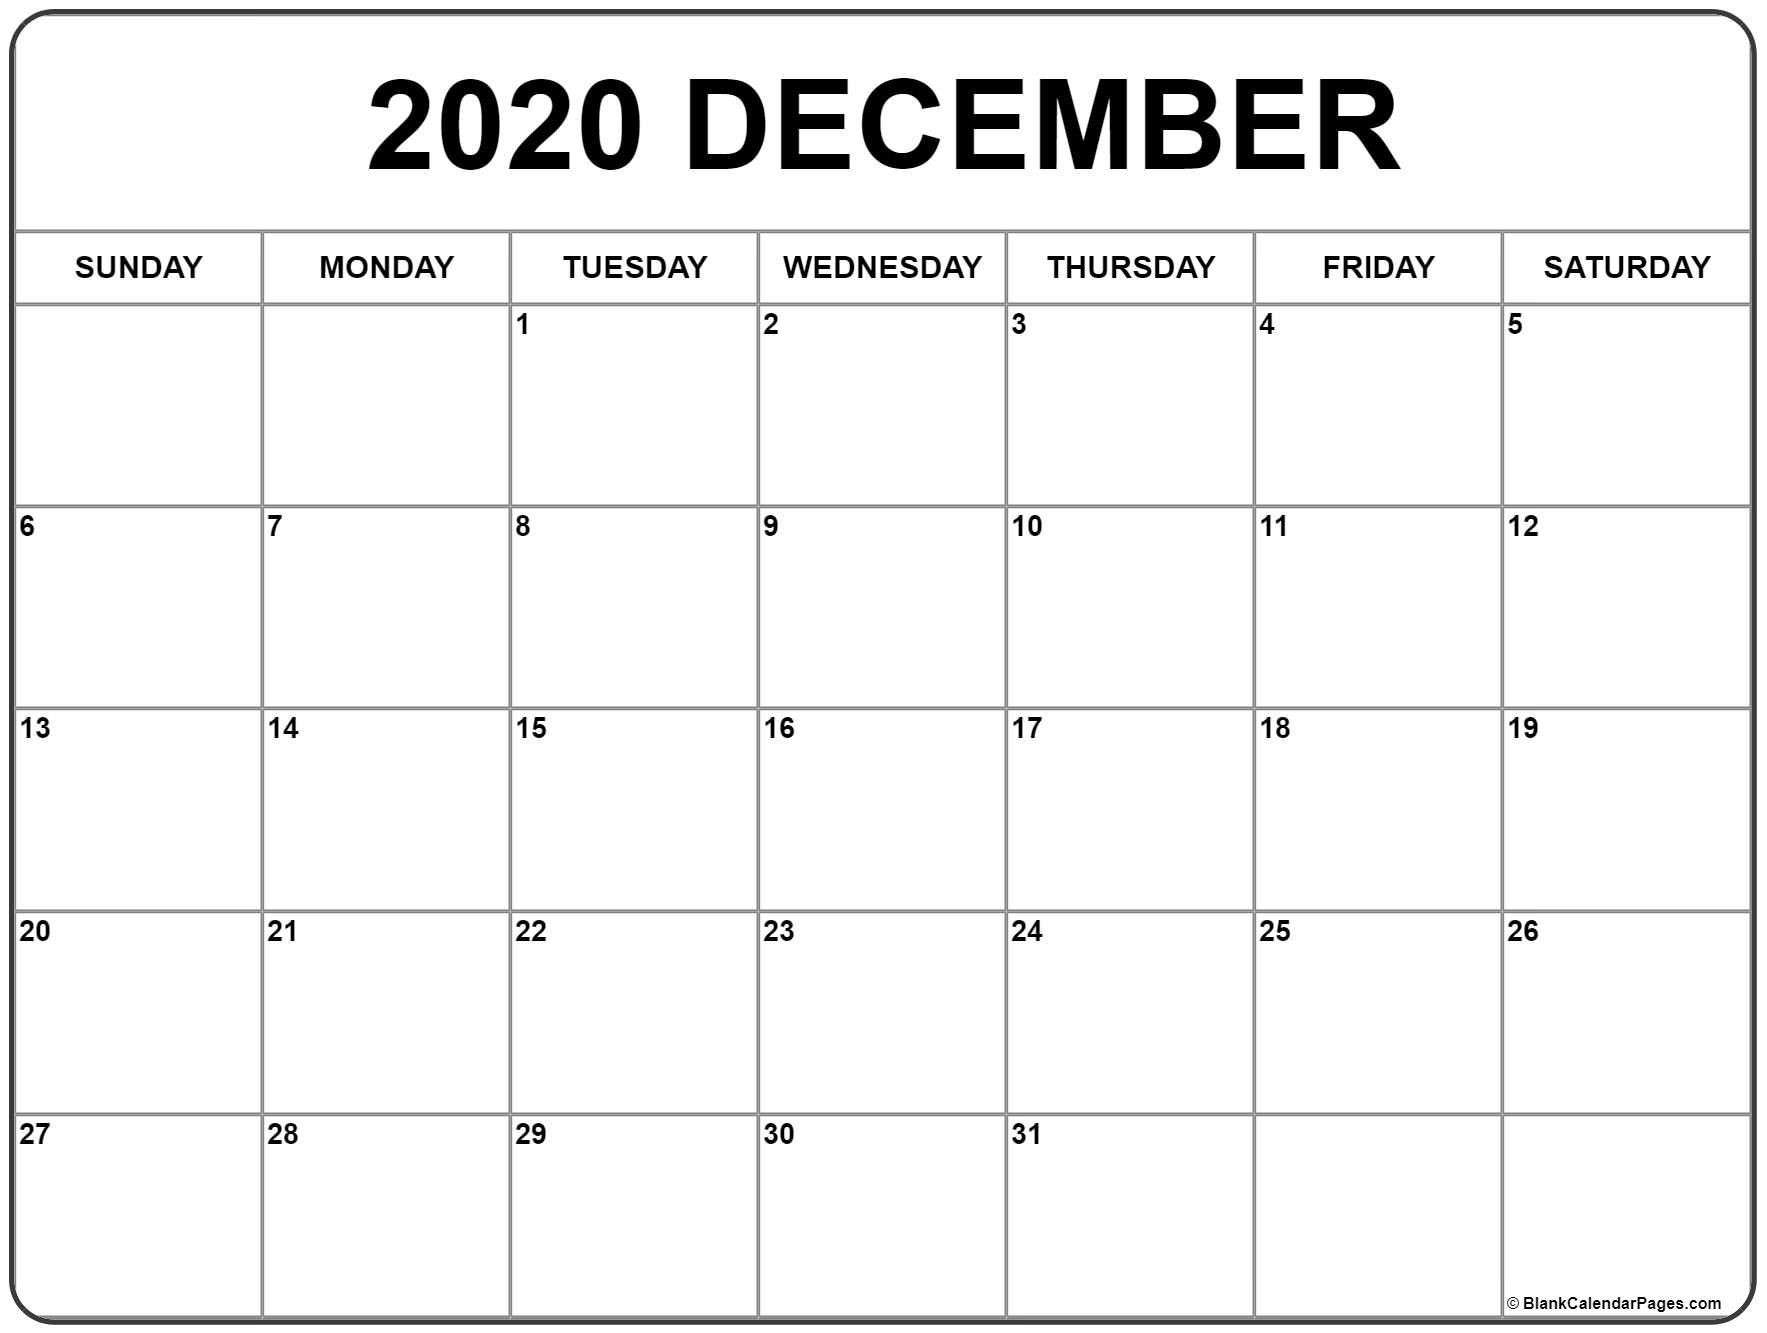 December 2020 Printable Calendar Template #2020Calendars  Blank Calendar Fill In 2020 Printable